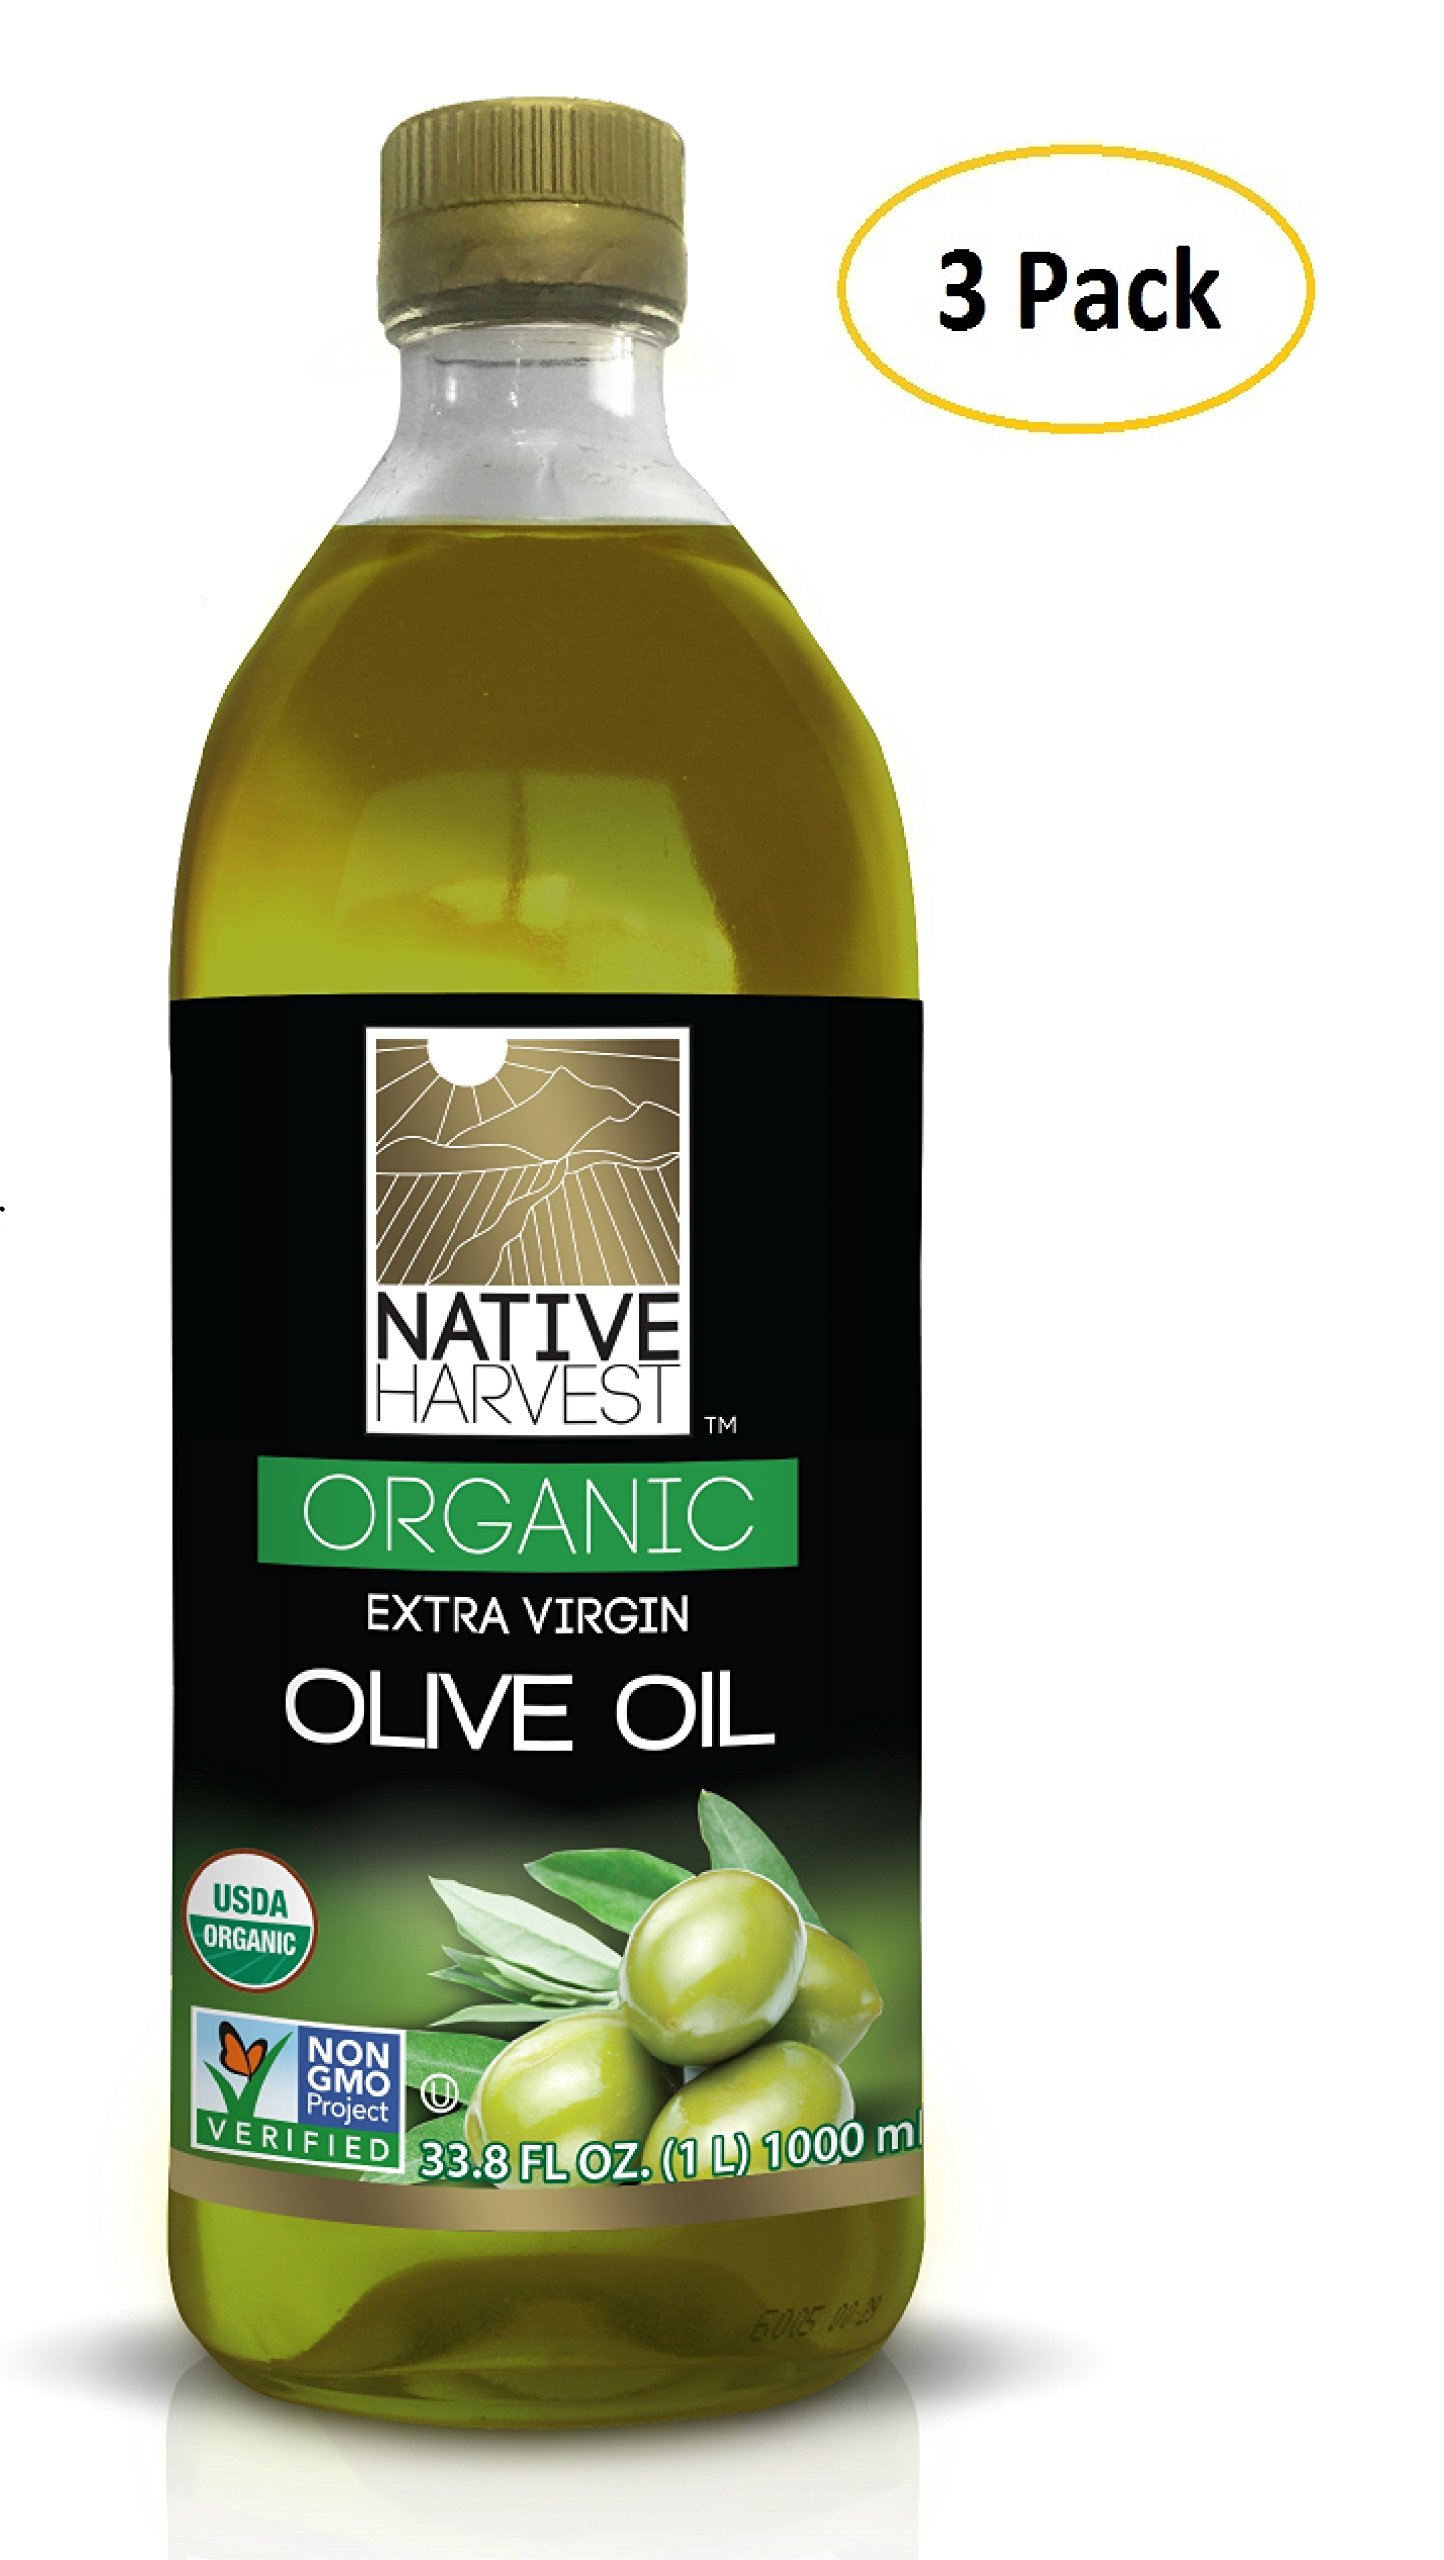 Native Harvest Organic Non-GMO Naturally Expeller Pressed Sunflower Oil, 1 Litre (33.8 FL OZ) 3 Packs